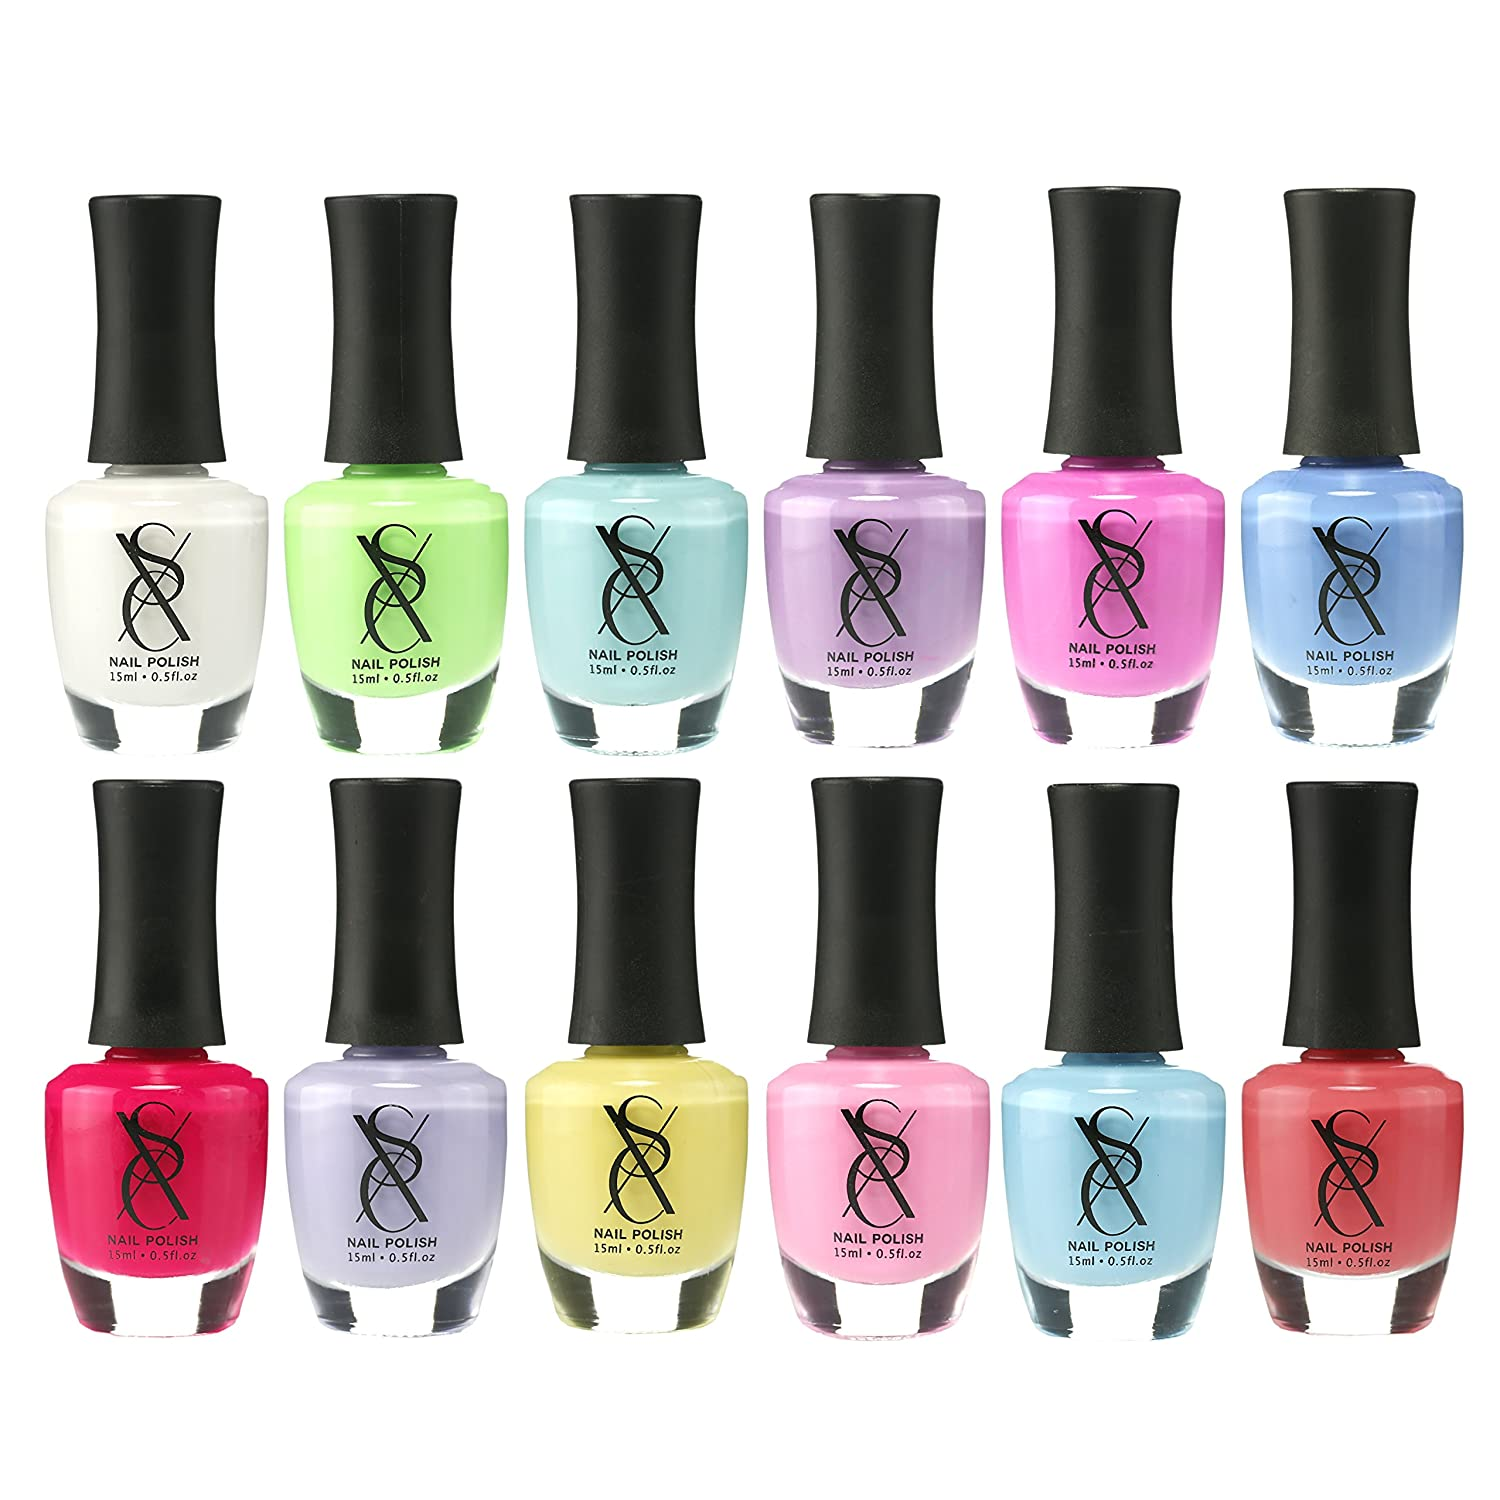 SXC Cosmetics Nail Polish Lacquer 15ml/0.5fl set (12 Color Set, 12E-PINK)